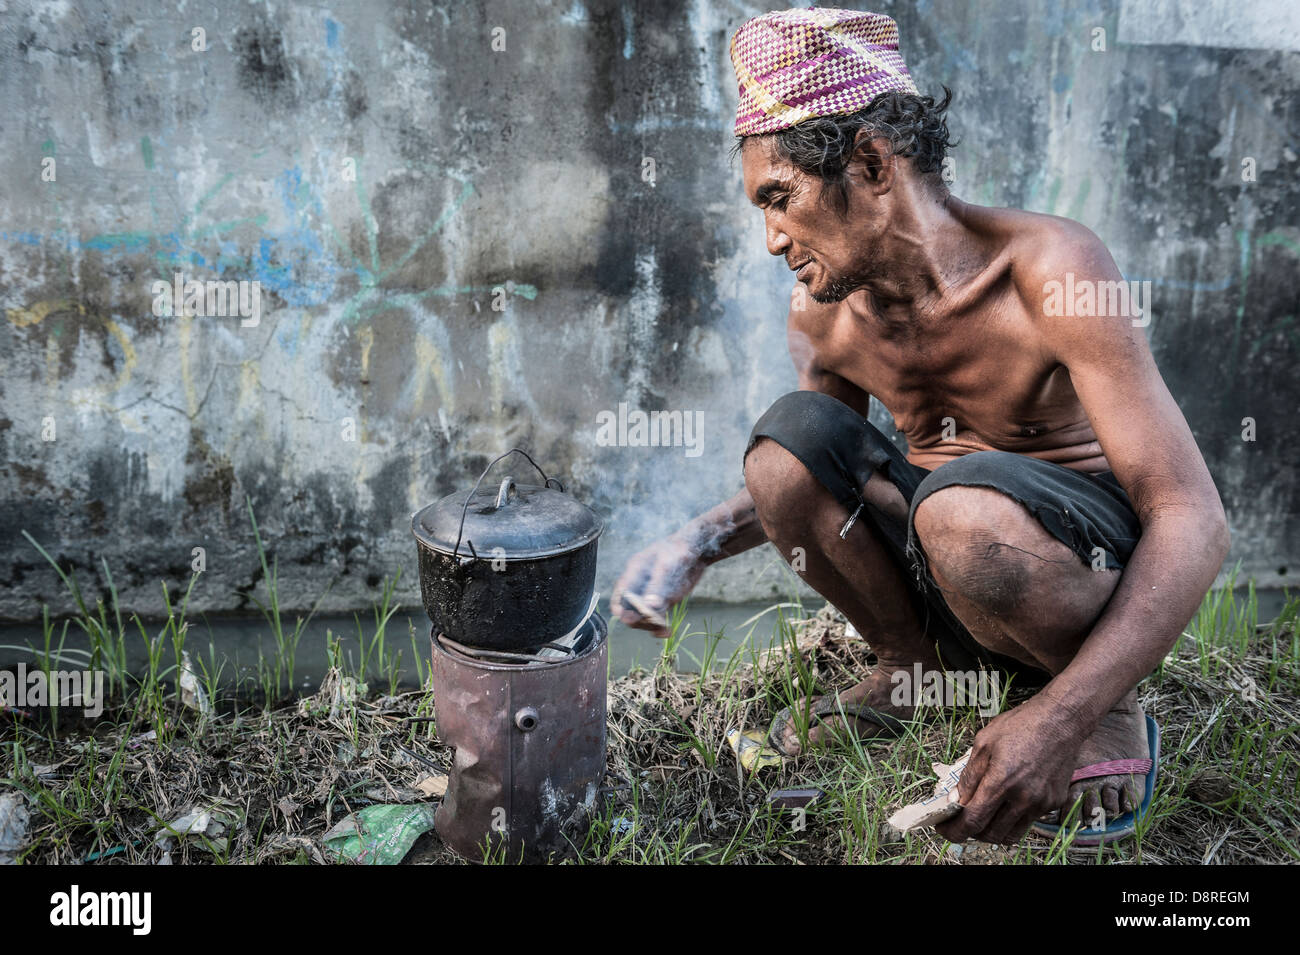 Homeless man cooking in the streets of Cebu, Visayas, Philippines, South East Asia. - Stock Image